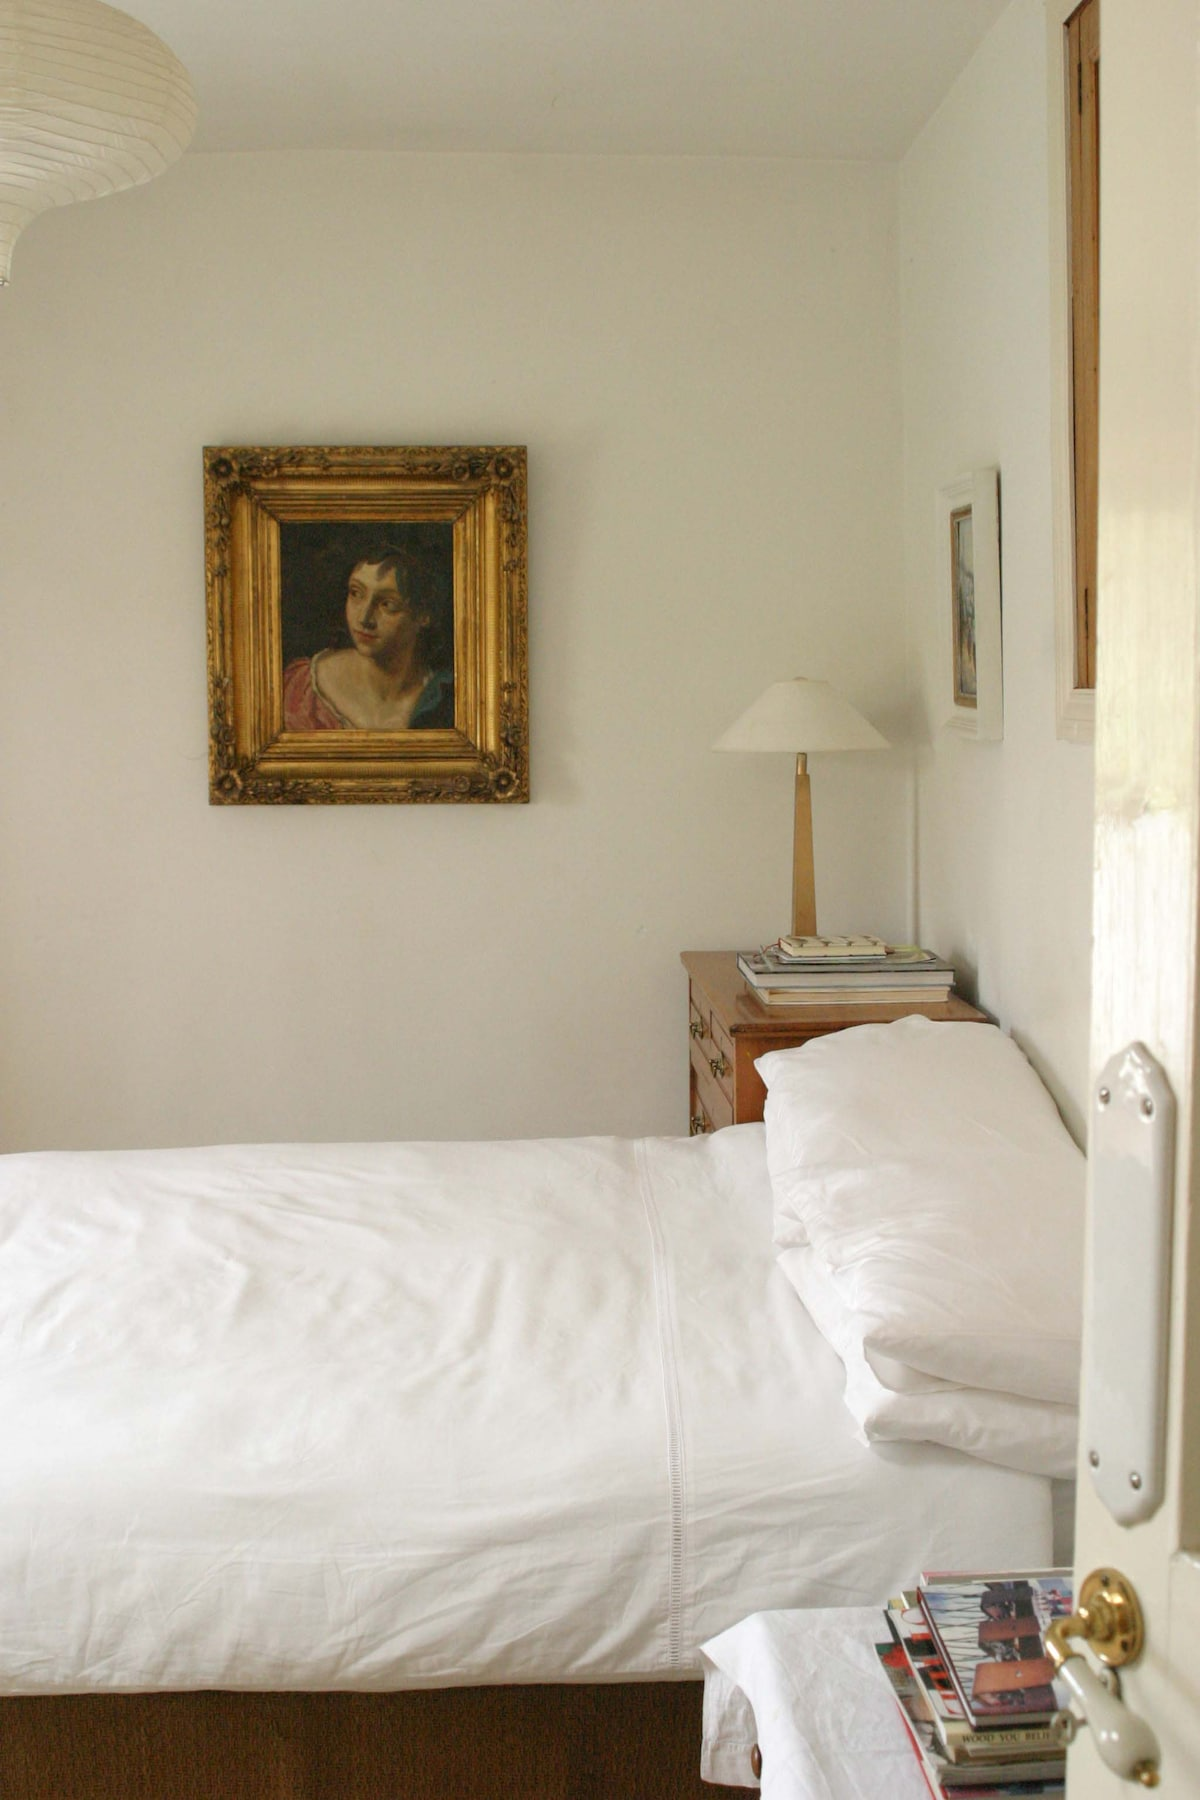 The double bedroom available